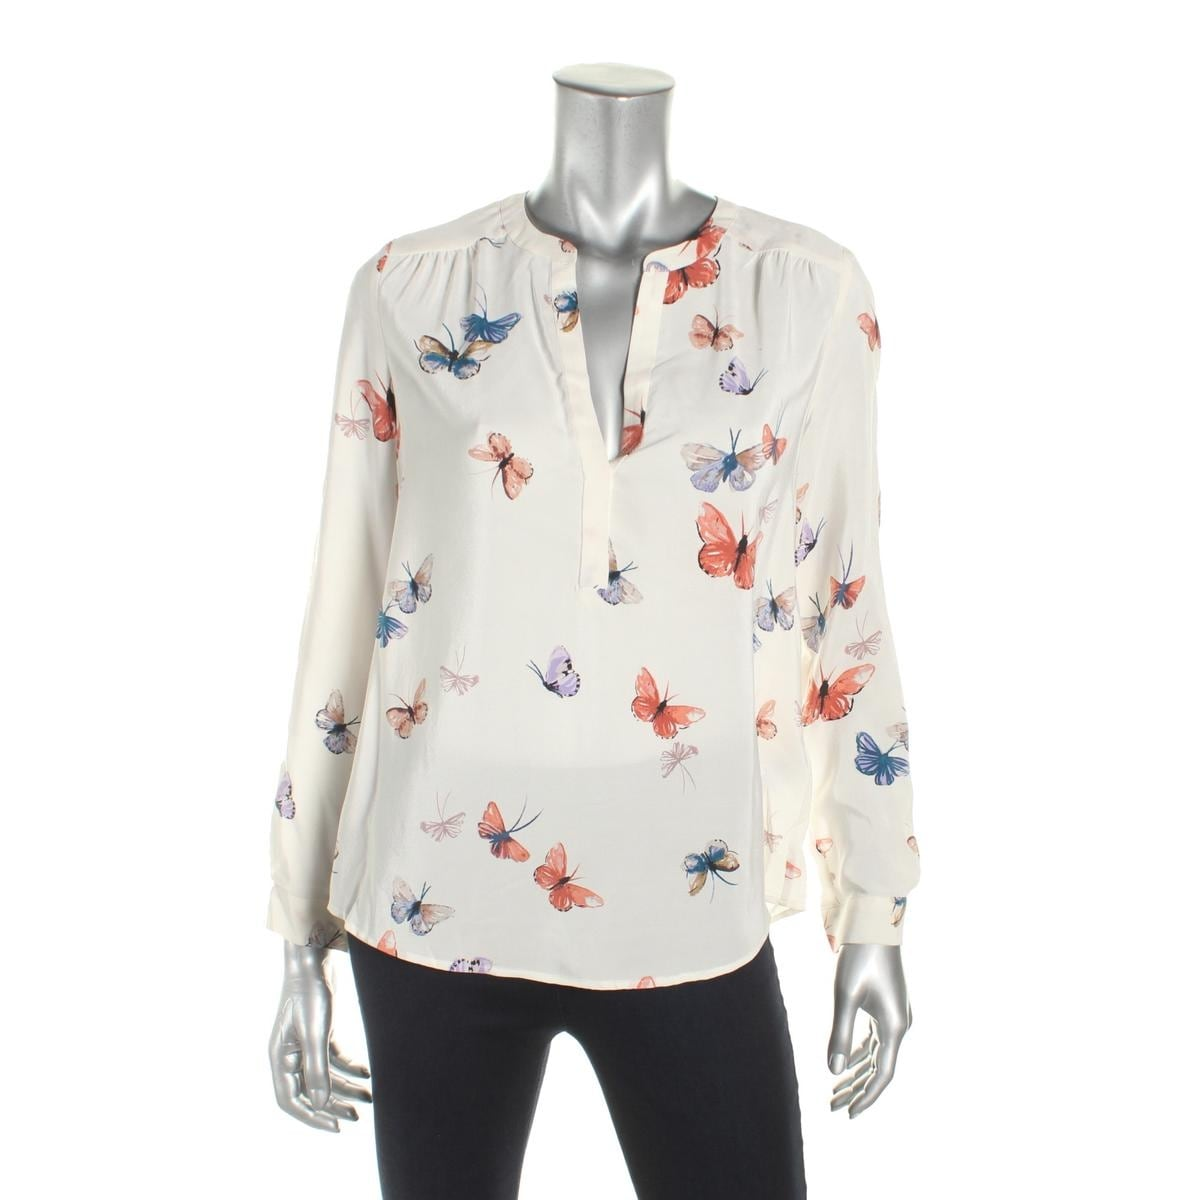 082c2166d8701 Shop Joie Womens Carita Blouse Silk Butterfly Print - Free Shipping Today -  Overstock - 18592462